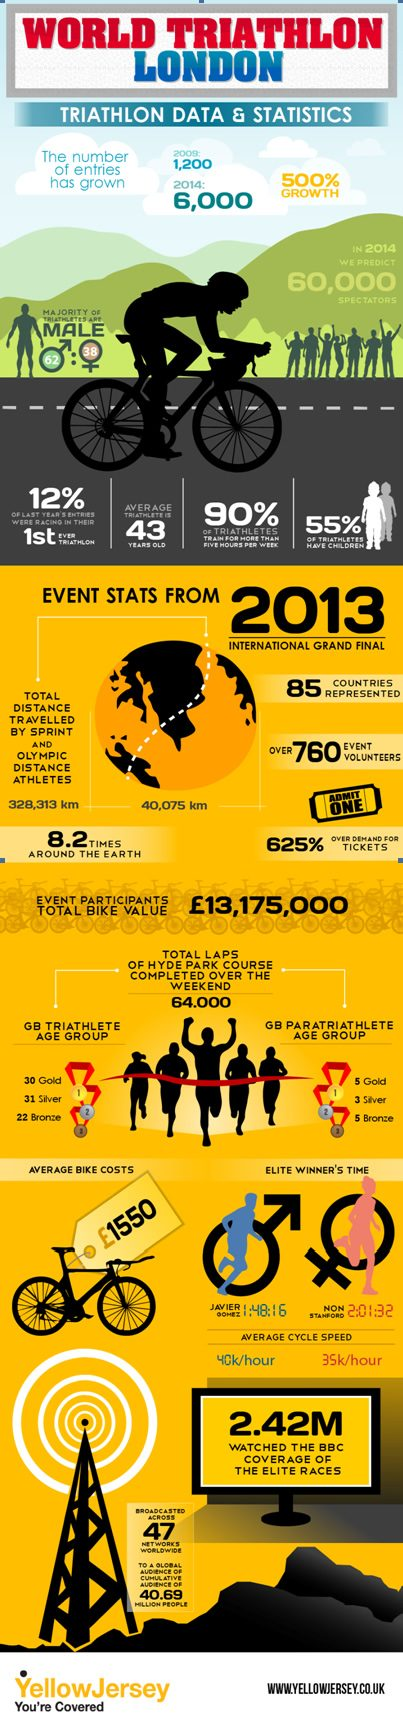 WTS London infographic